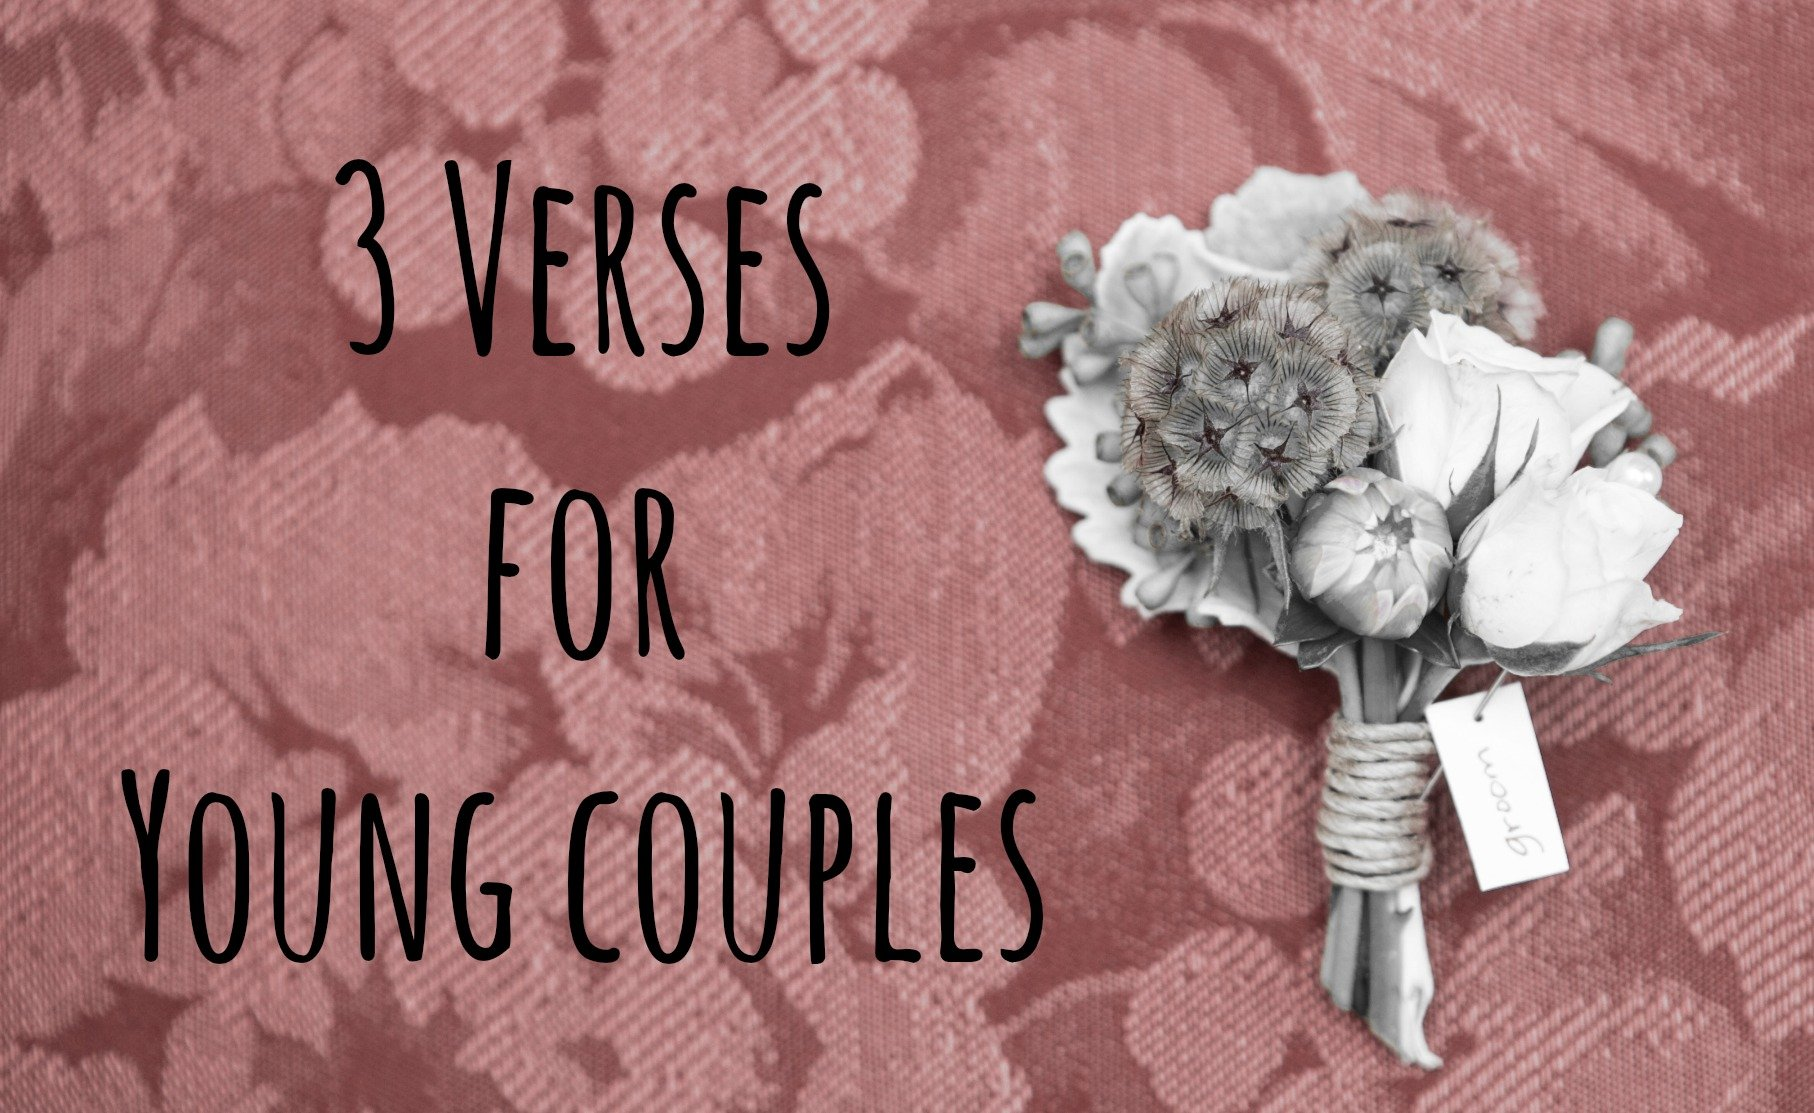 Bible Quotes For Couples Quotesgram Ideas And Designs